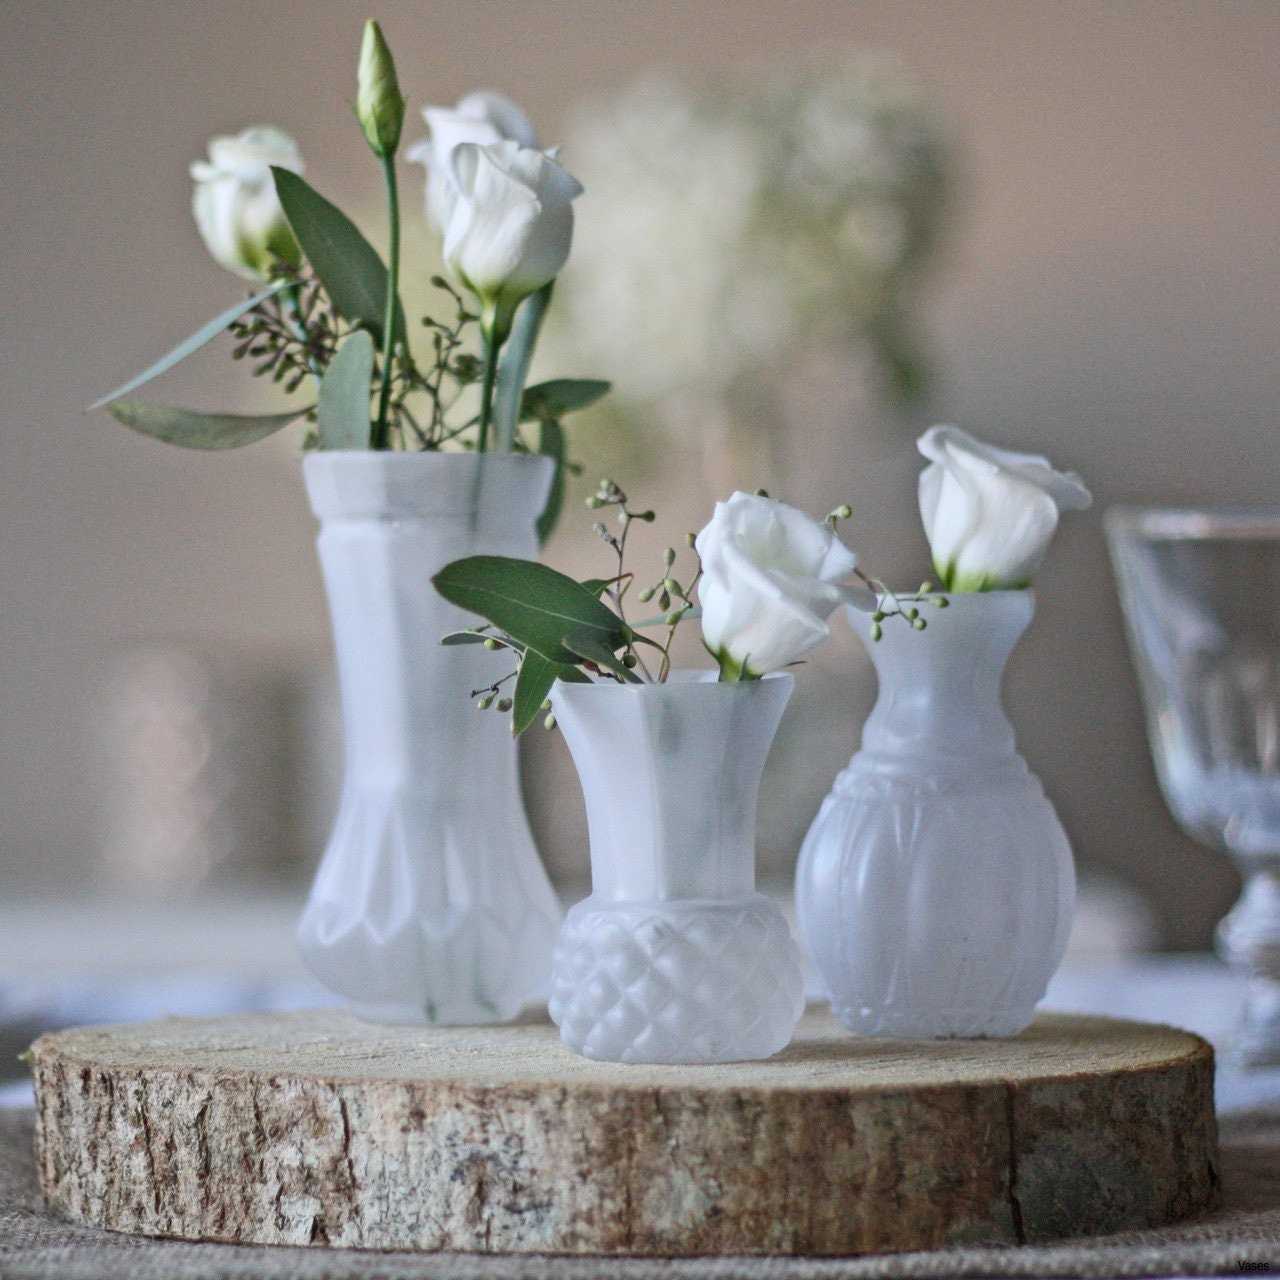 blue centerpiece vases of wedding vase centerpieces image jar flower 1h vases bud wedding vase with jar flower 1h vases bud wedding vase centerpiece idea i 0d white